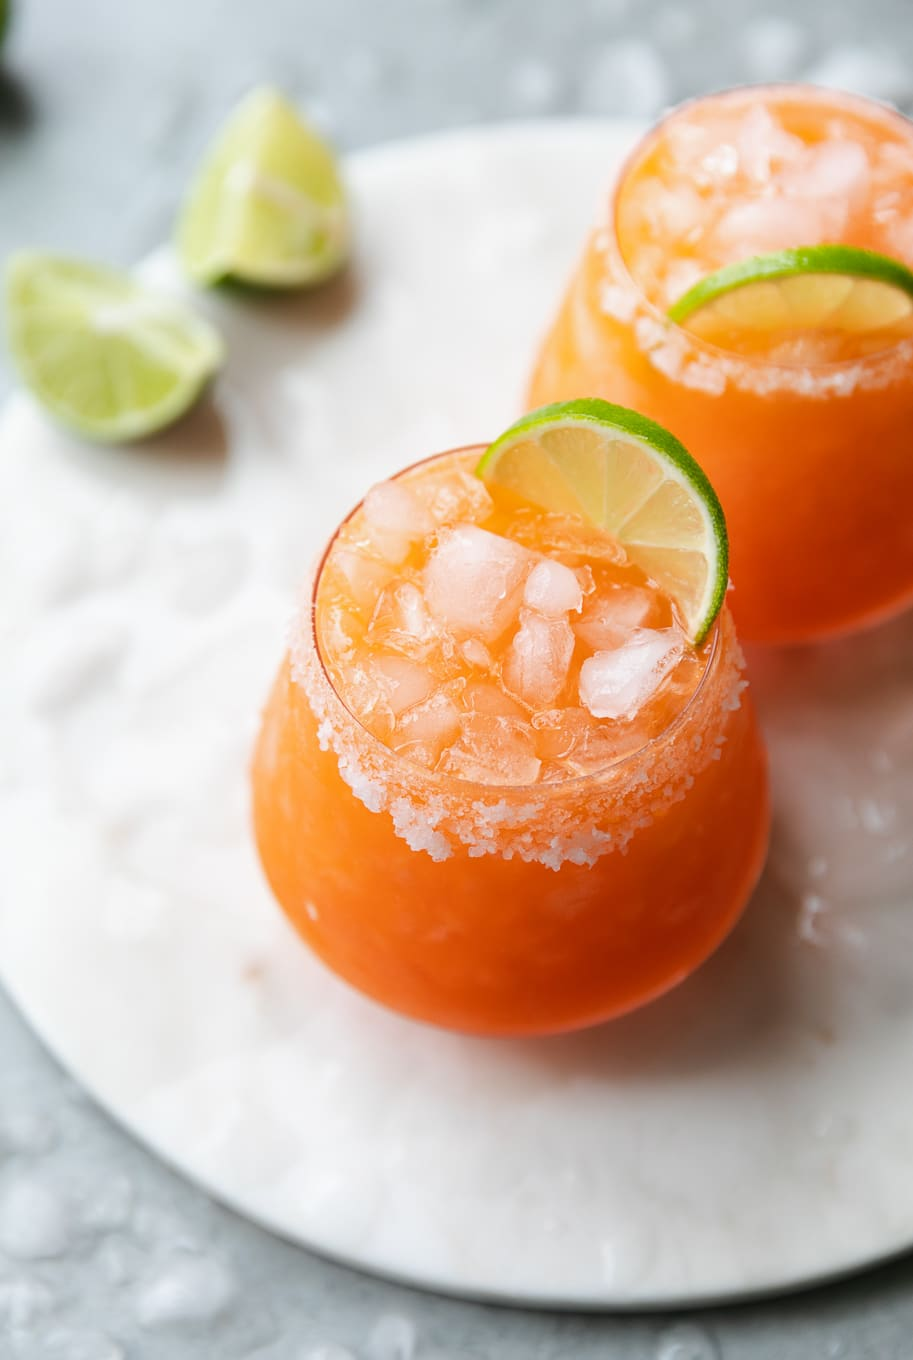 Close up shot of 2 carrot ginger margaritas garnished with a lime slice